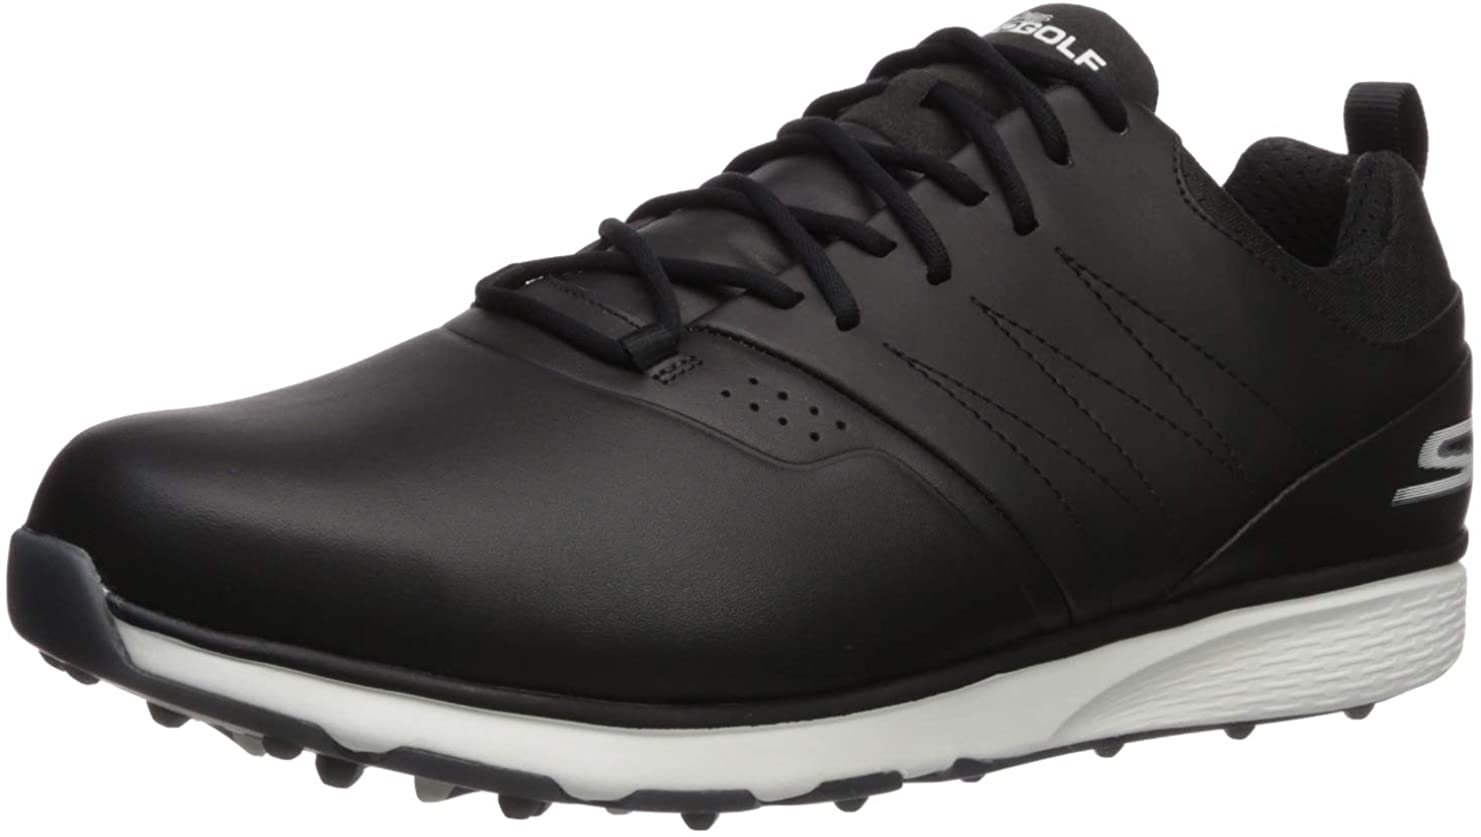 skechers golf shoes